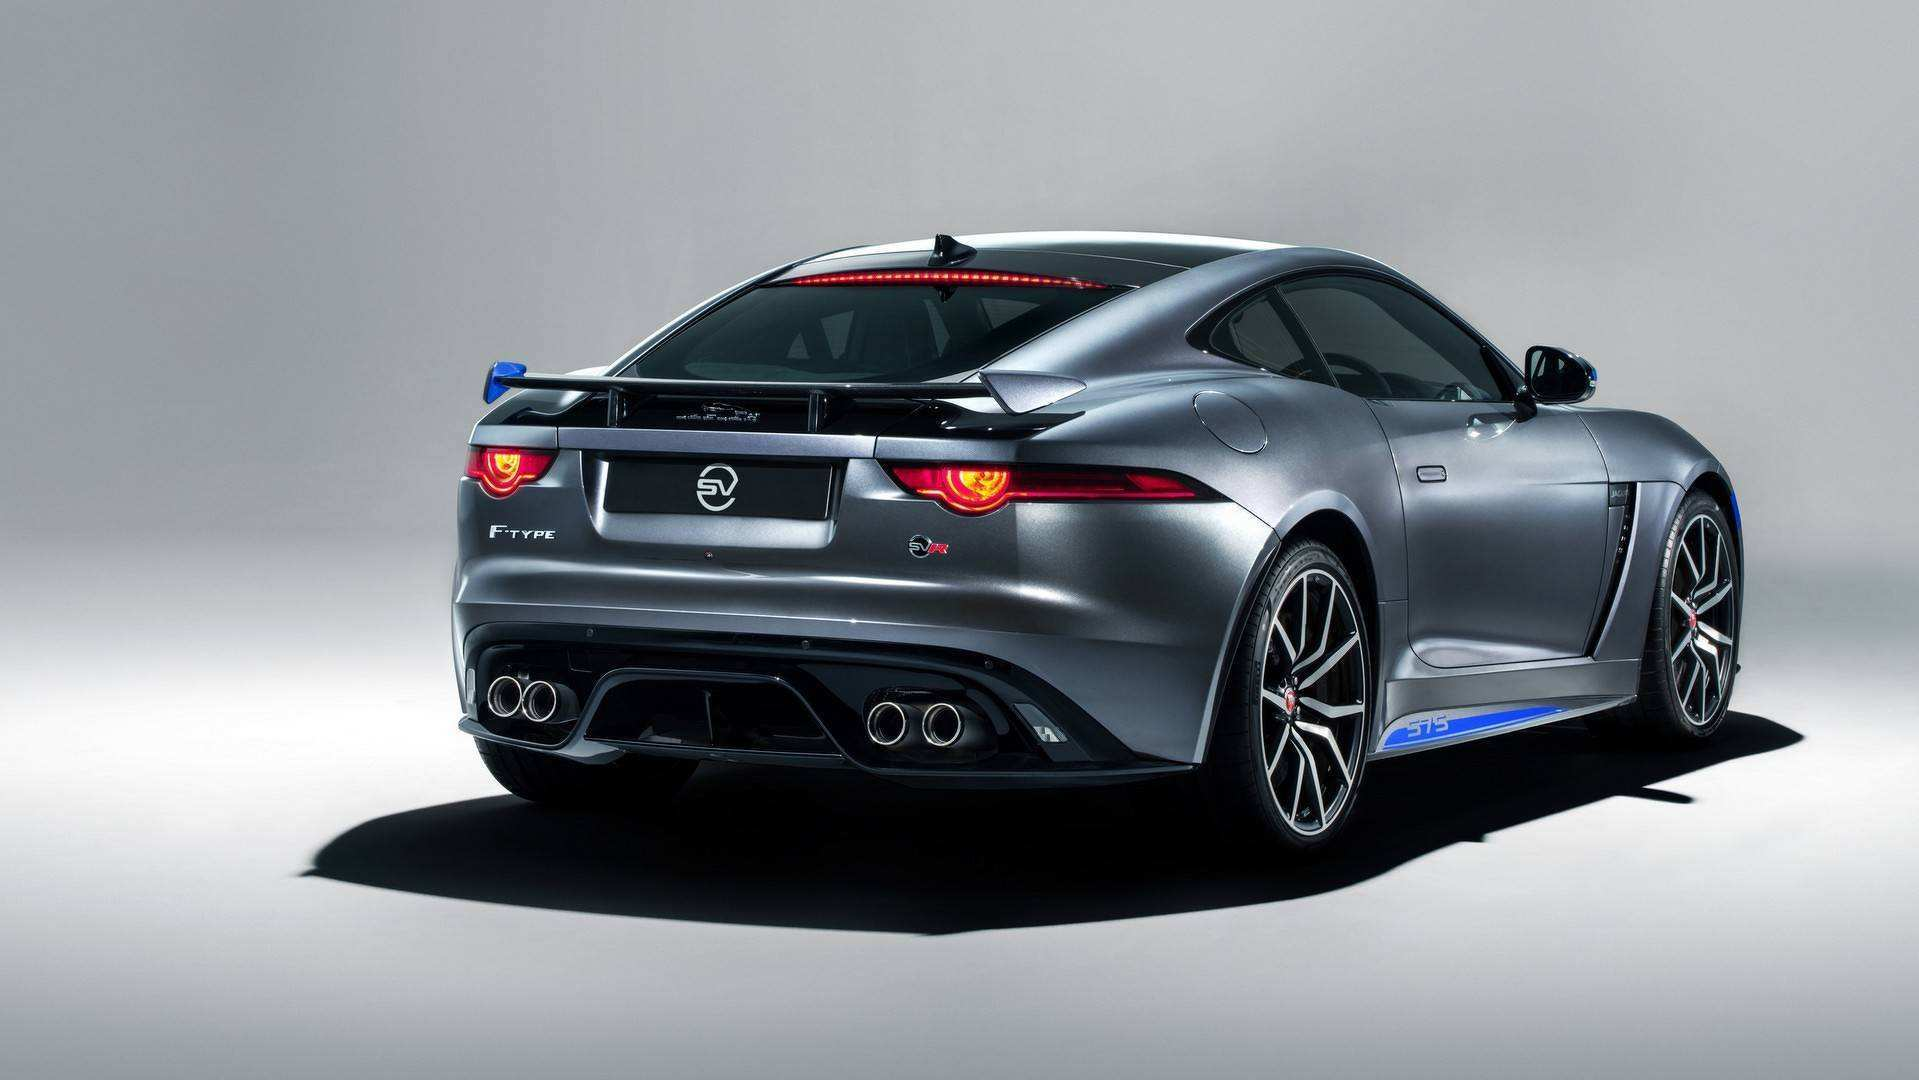 41 Great Jaguar Coupe 2020 Prices with Jaguar Coupe 2020